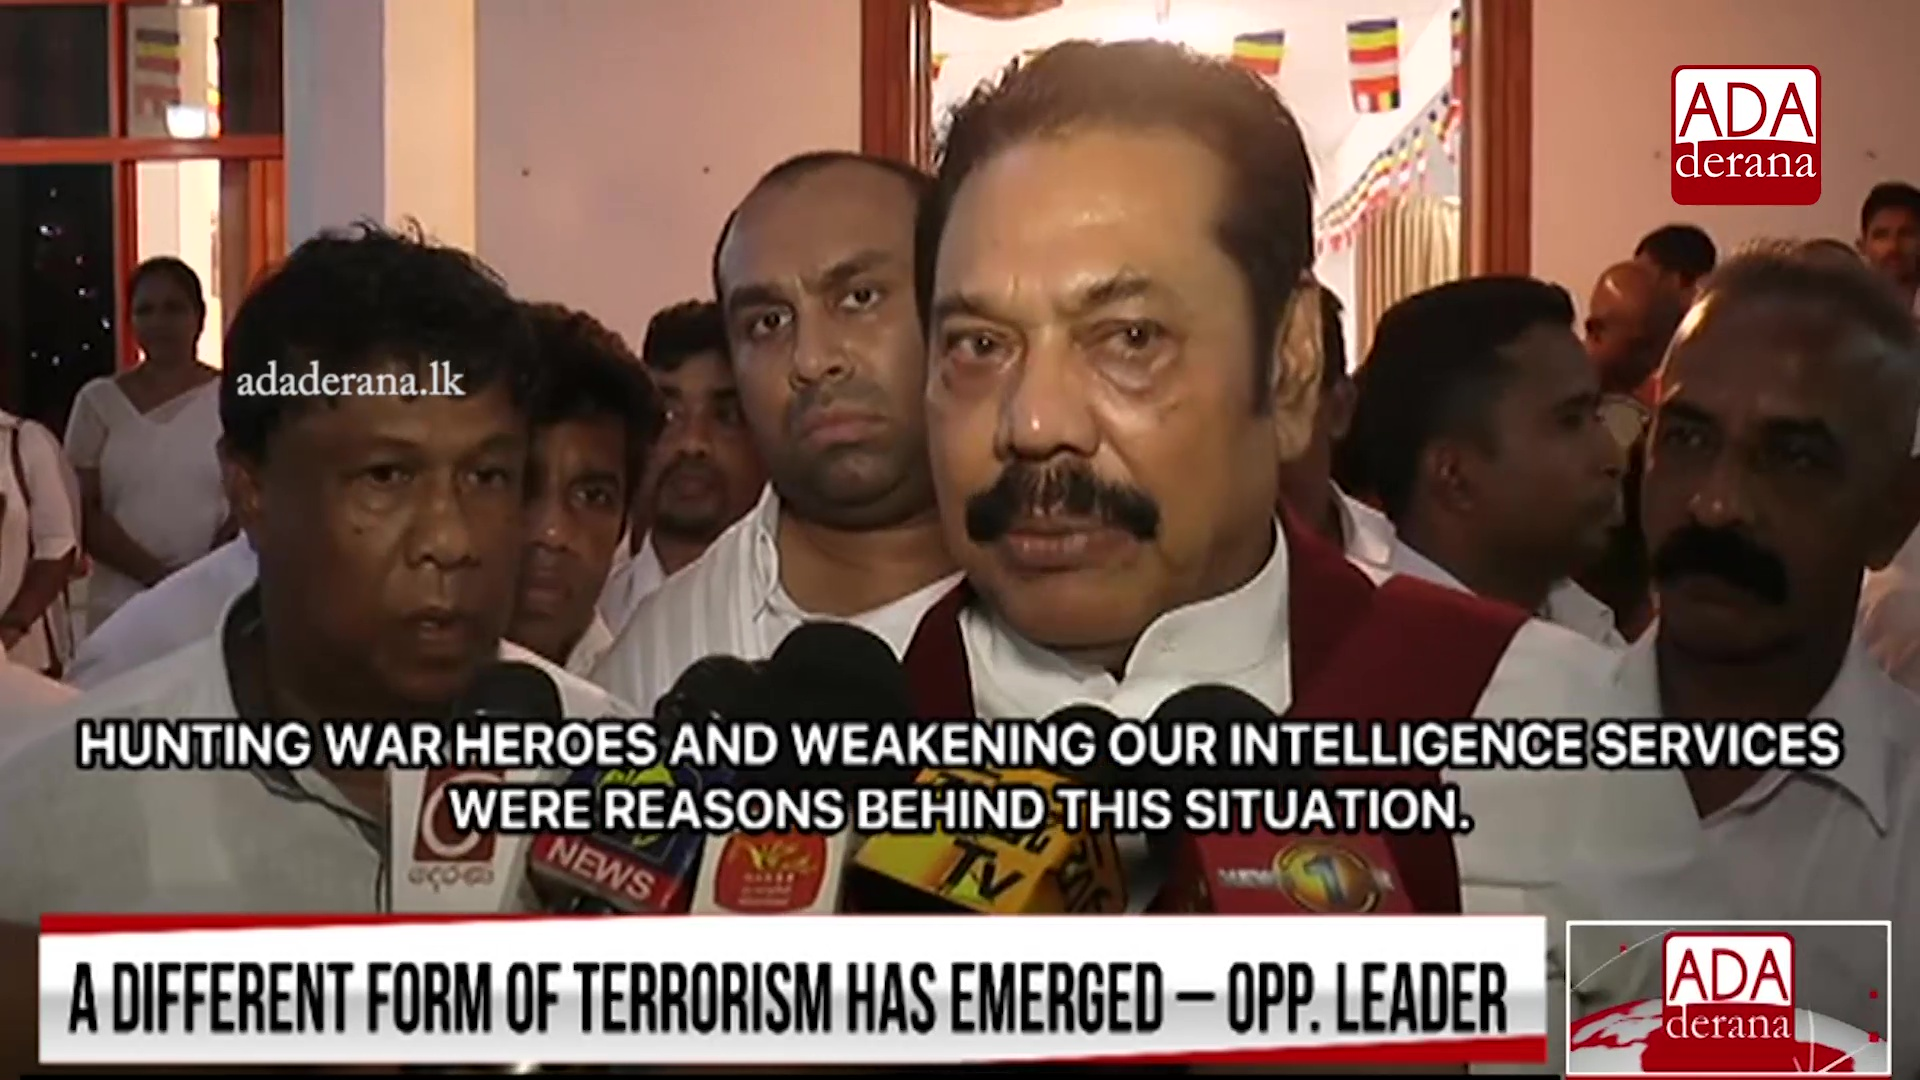 Hunt on war heroes is a reason behind rise of terrorism - Mahinda (English)